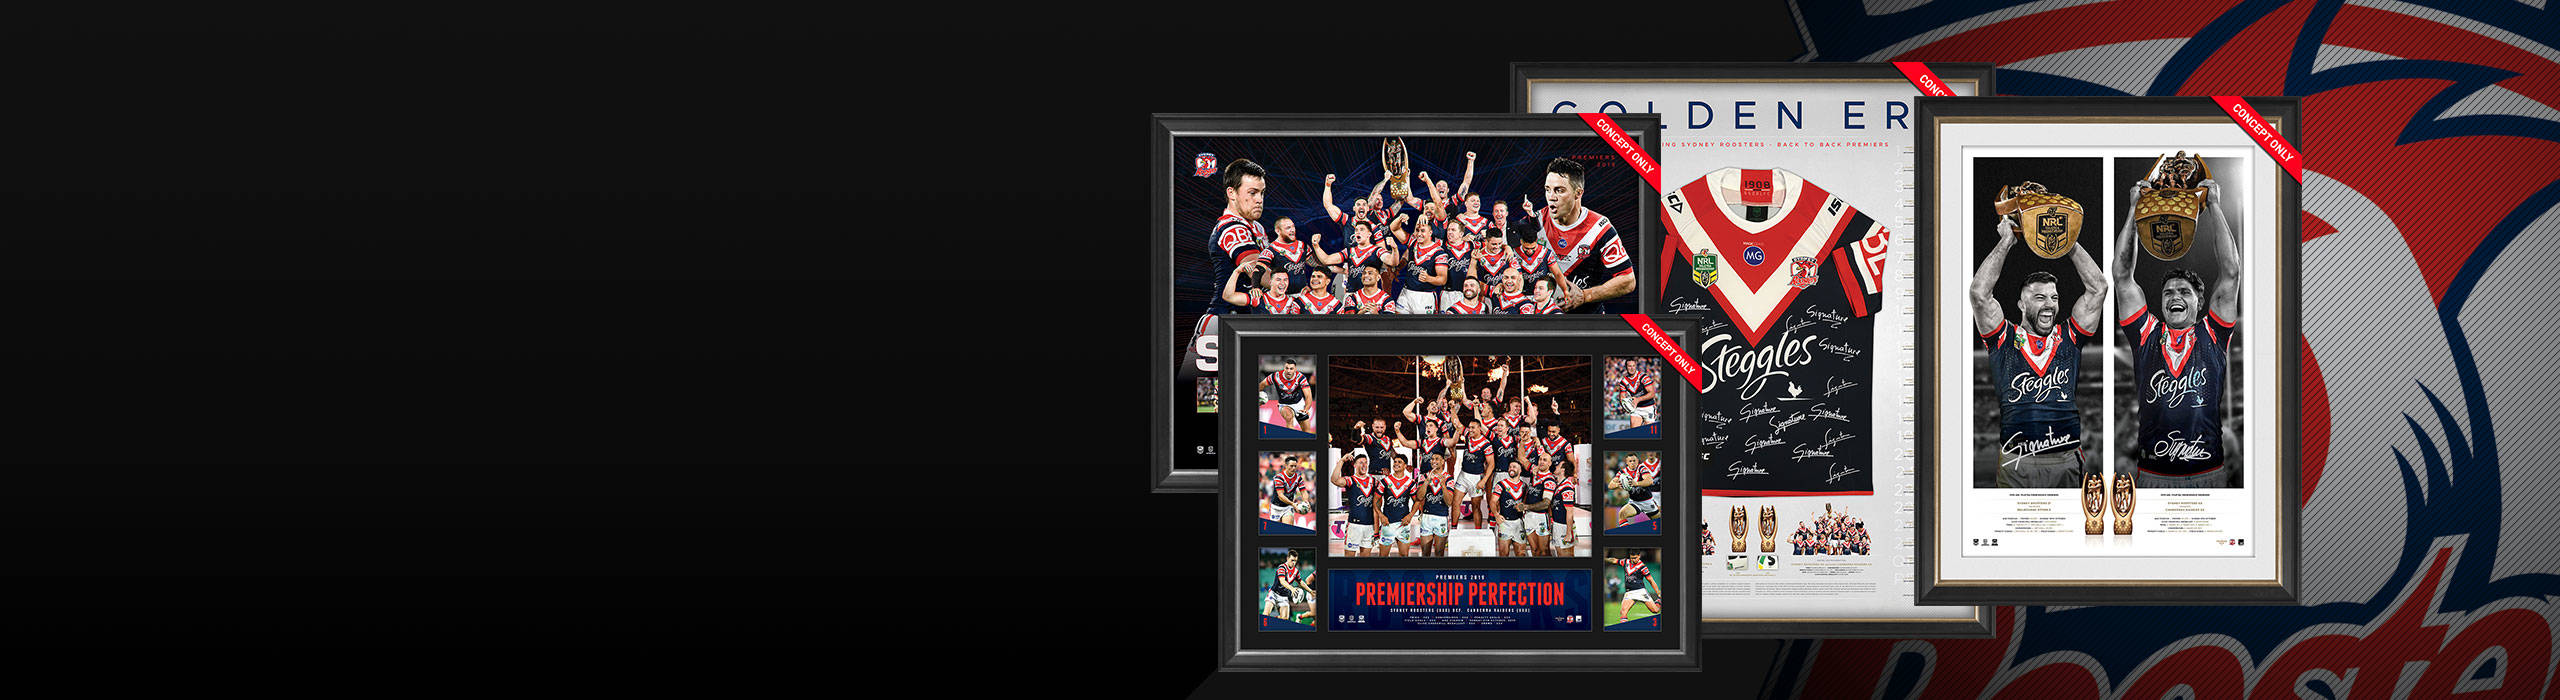 SYDNEY ROOSTERS 2019 PREMIERS